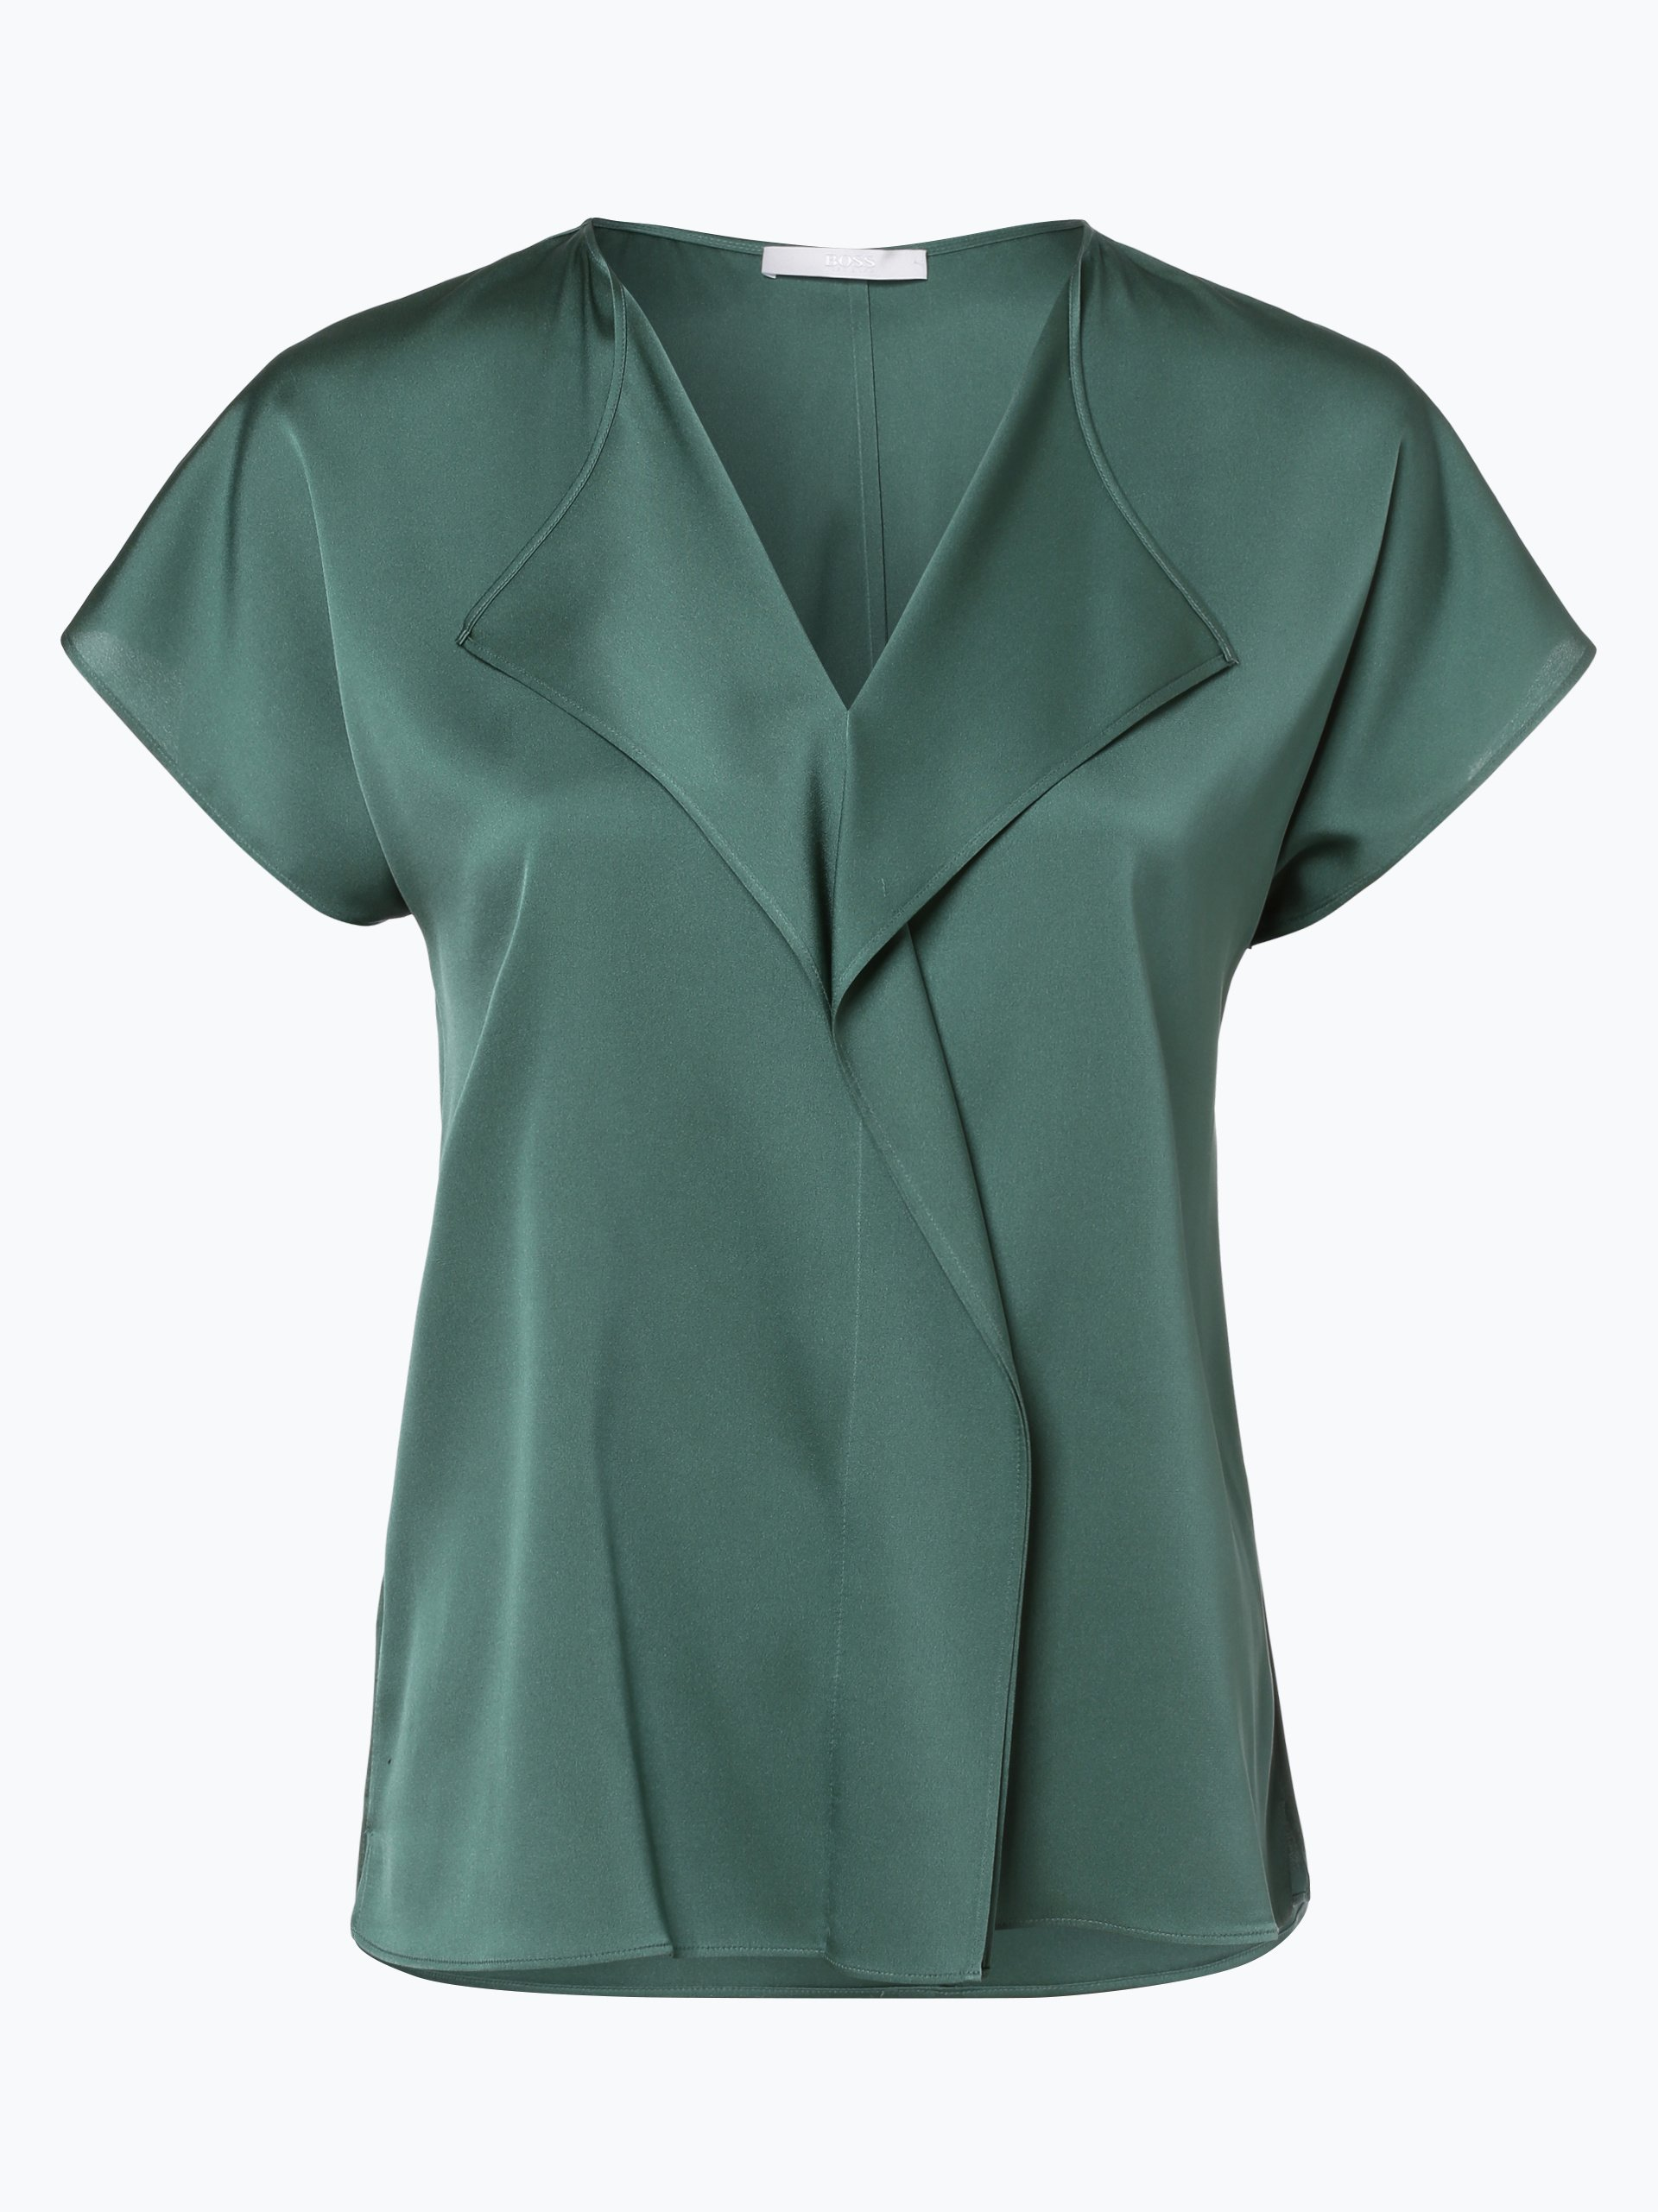 BOSS Damen Bluse aus Seiden-Mix - Intessa